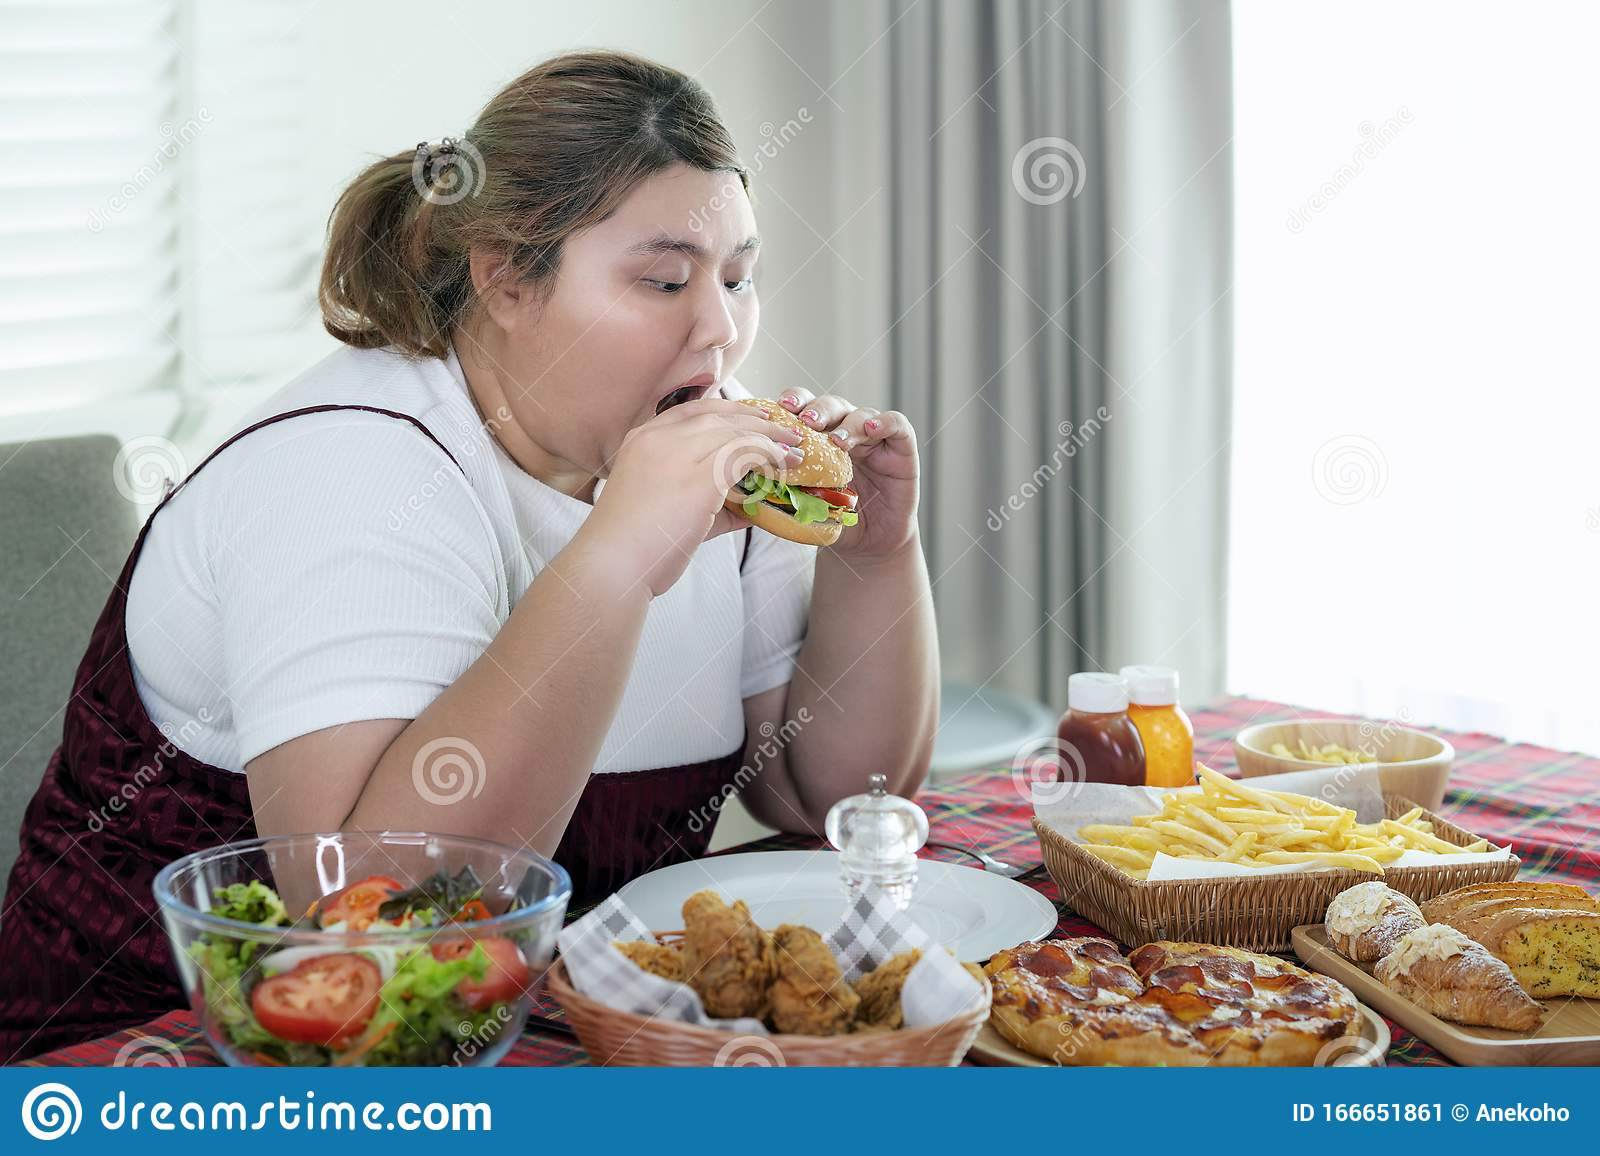 Fat Chicks Eating Food Pictures